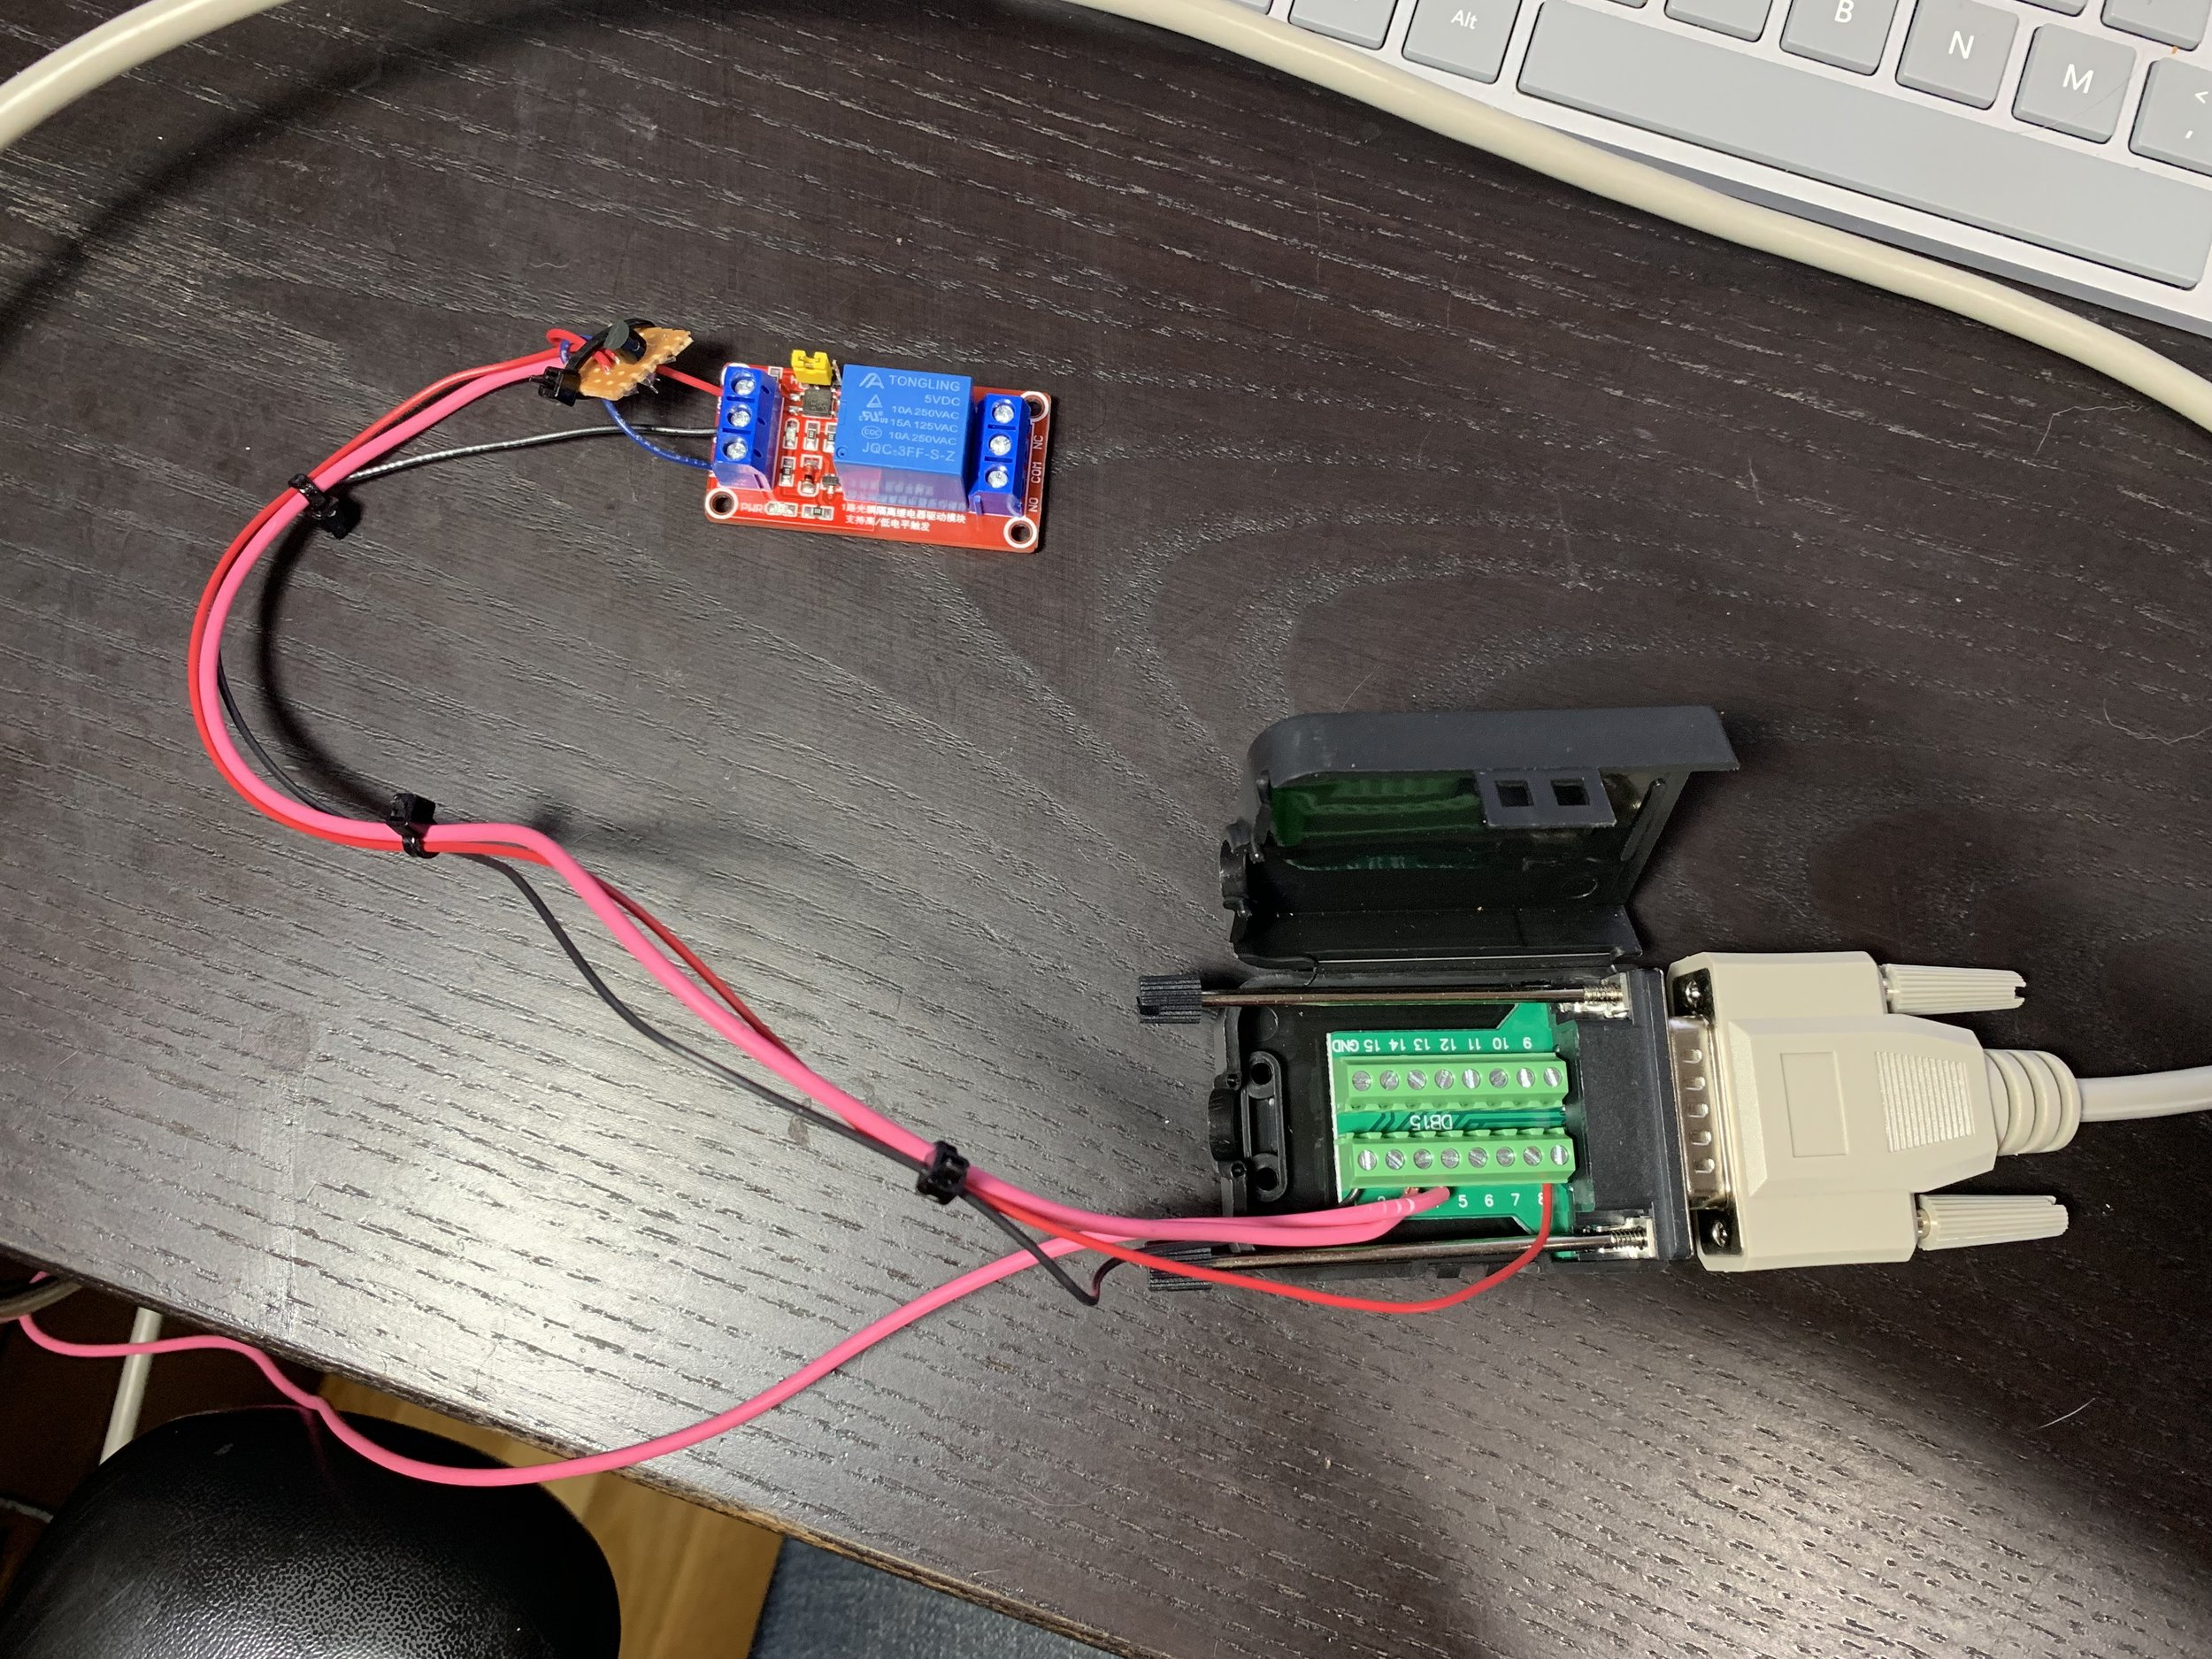 The DB15 connector running to the relay board and the externally mounted MOSFET. The other pink wire is for the input from the mode switch to tell MegaSquirt that the A/C is on.